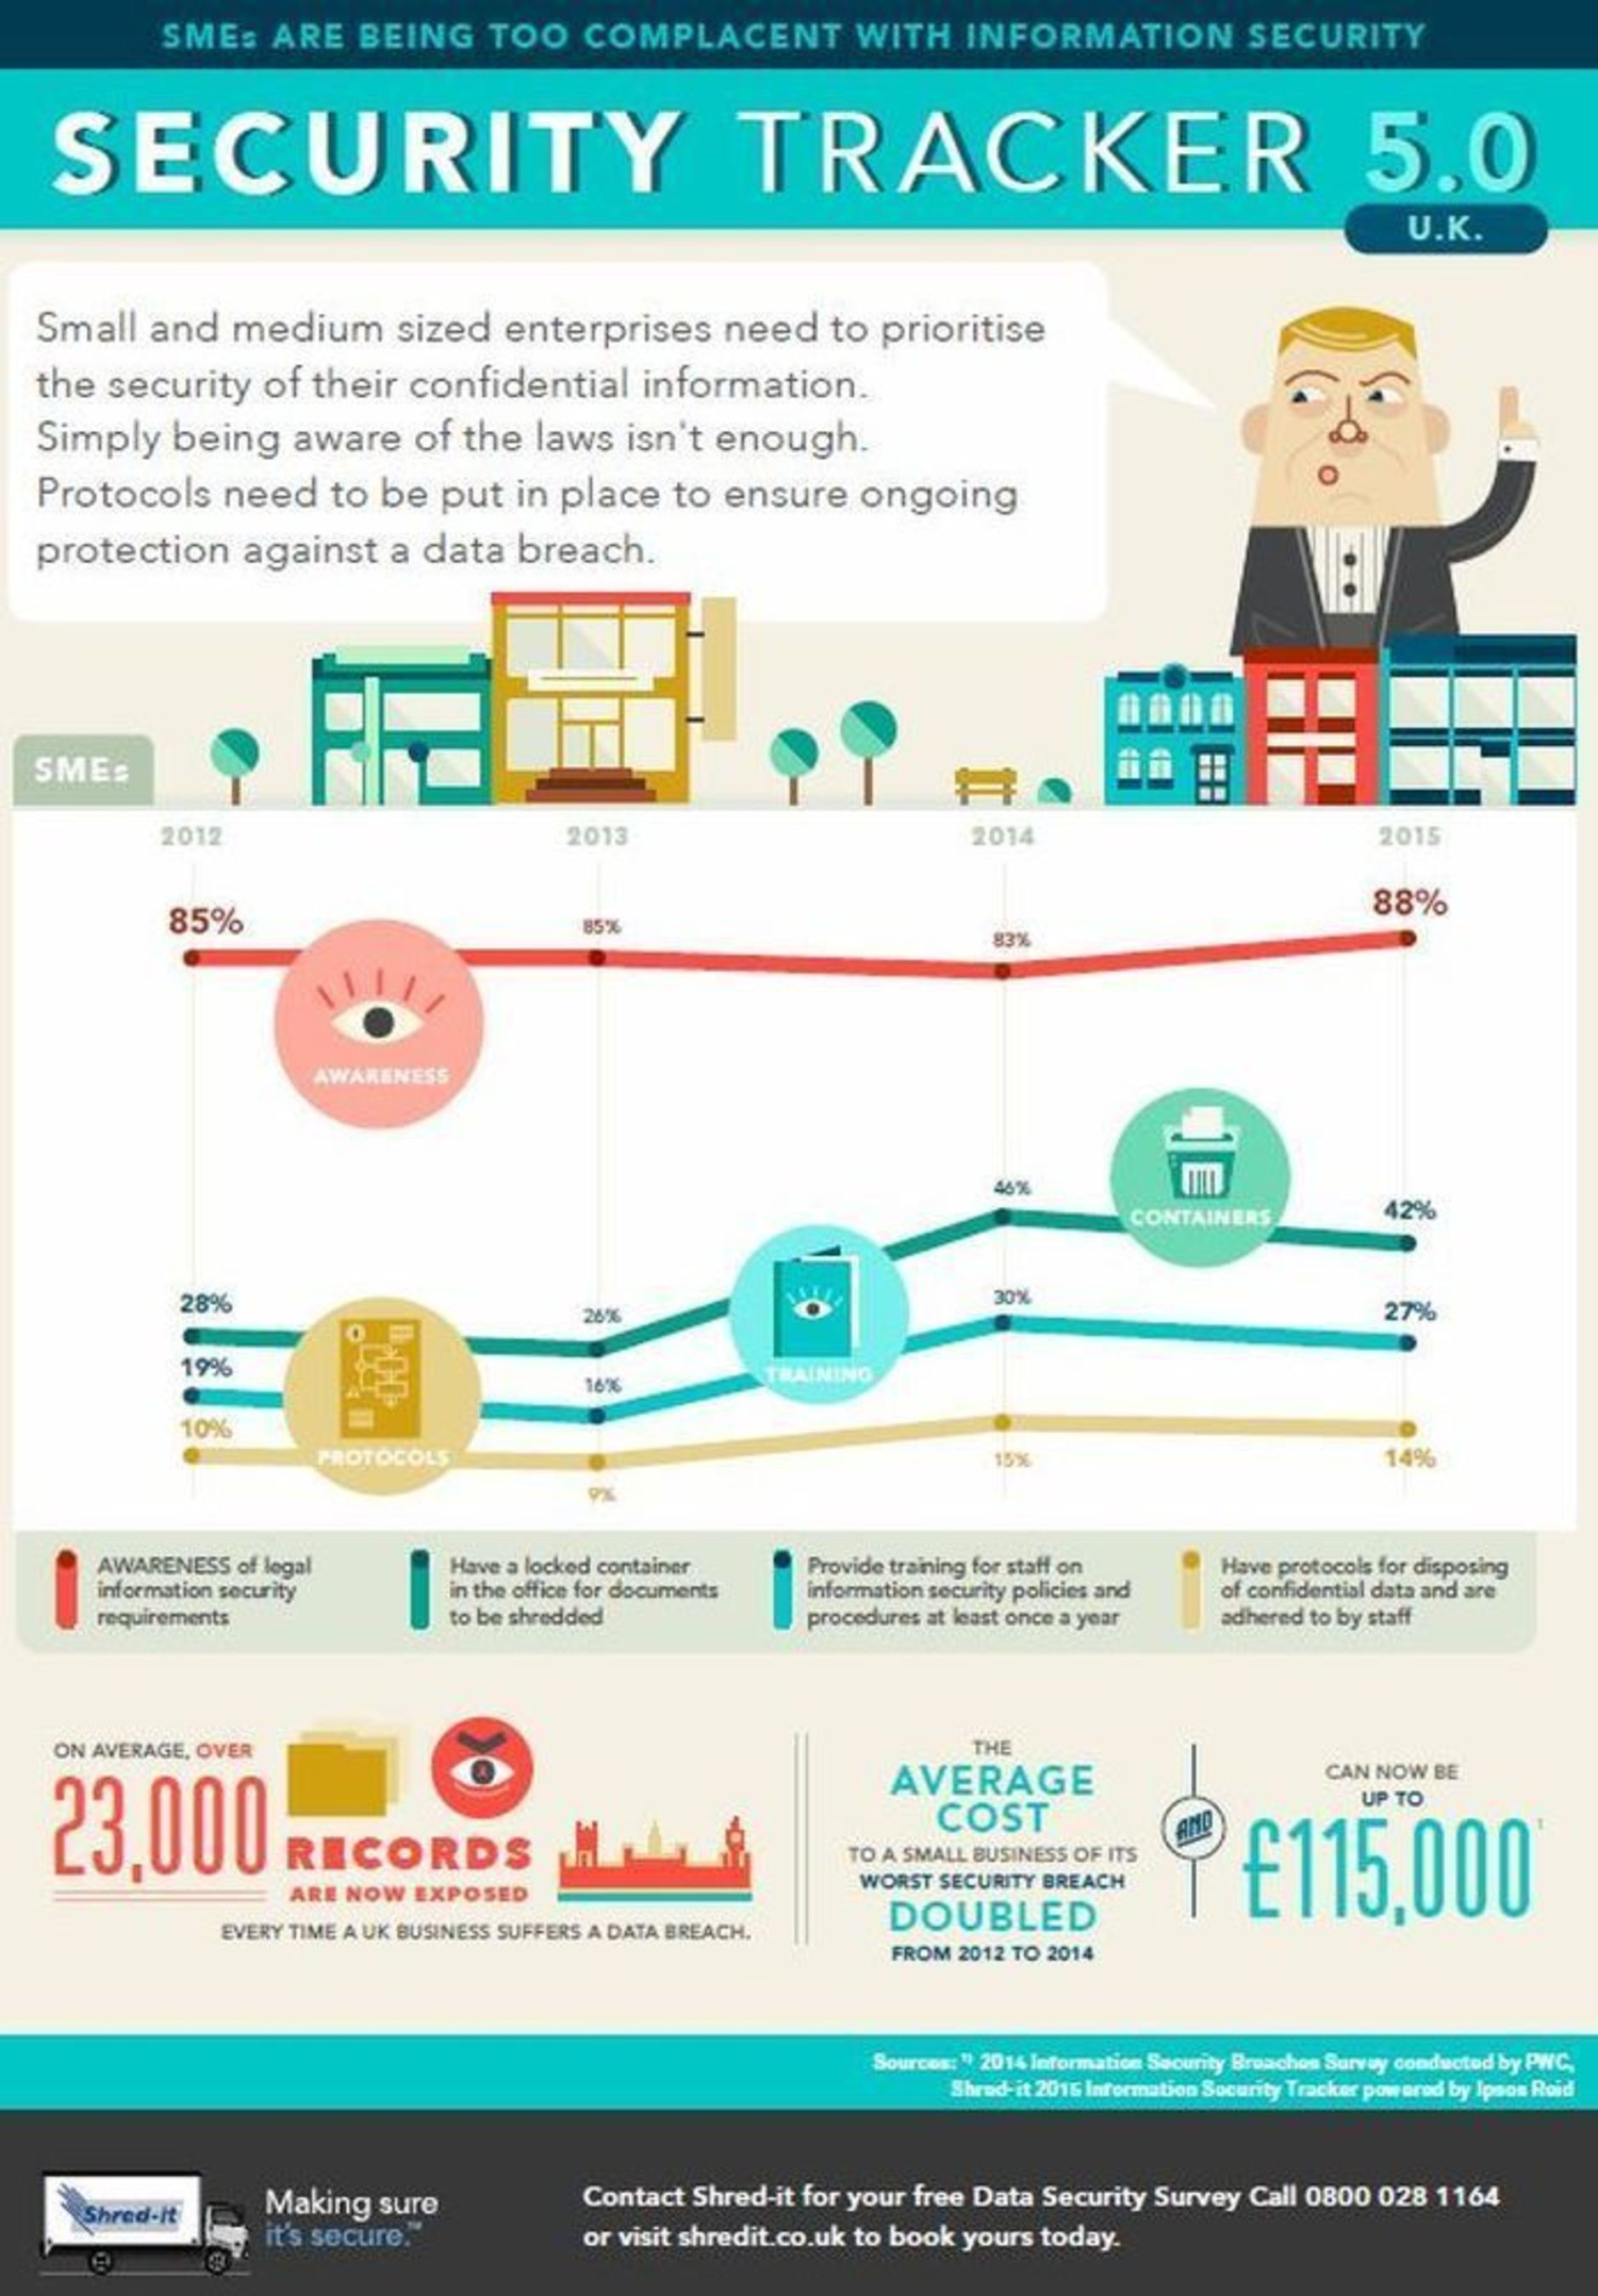 Shred-itâeuro(TM)s latest Security Tracker infographic shows that SMEs are  not